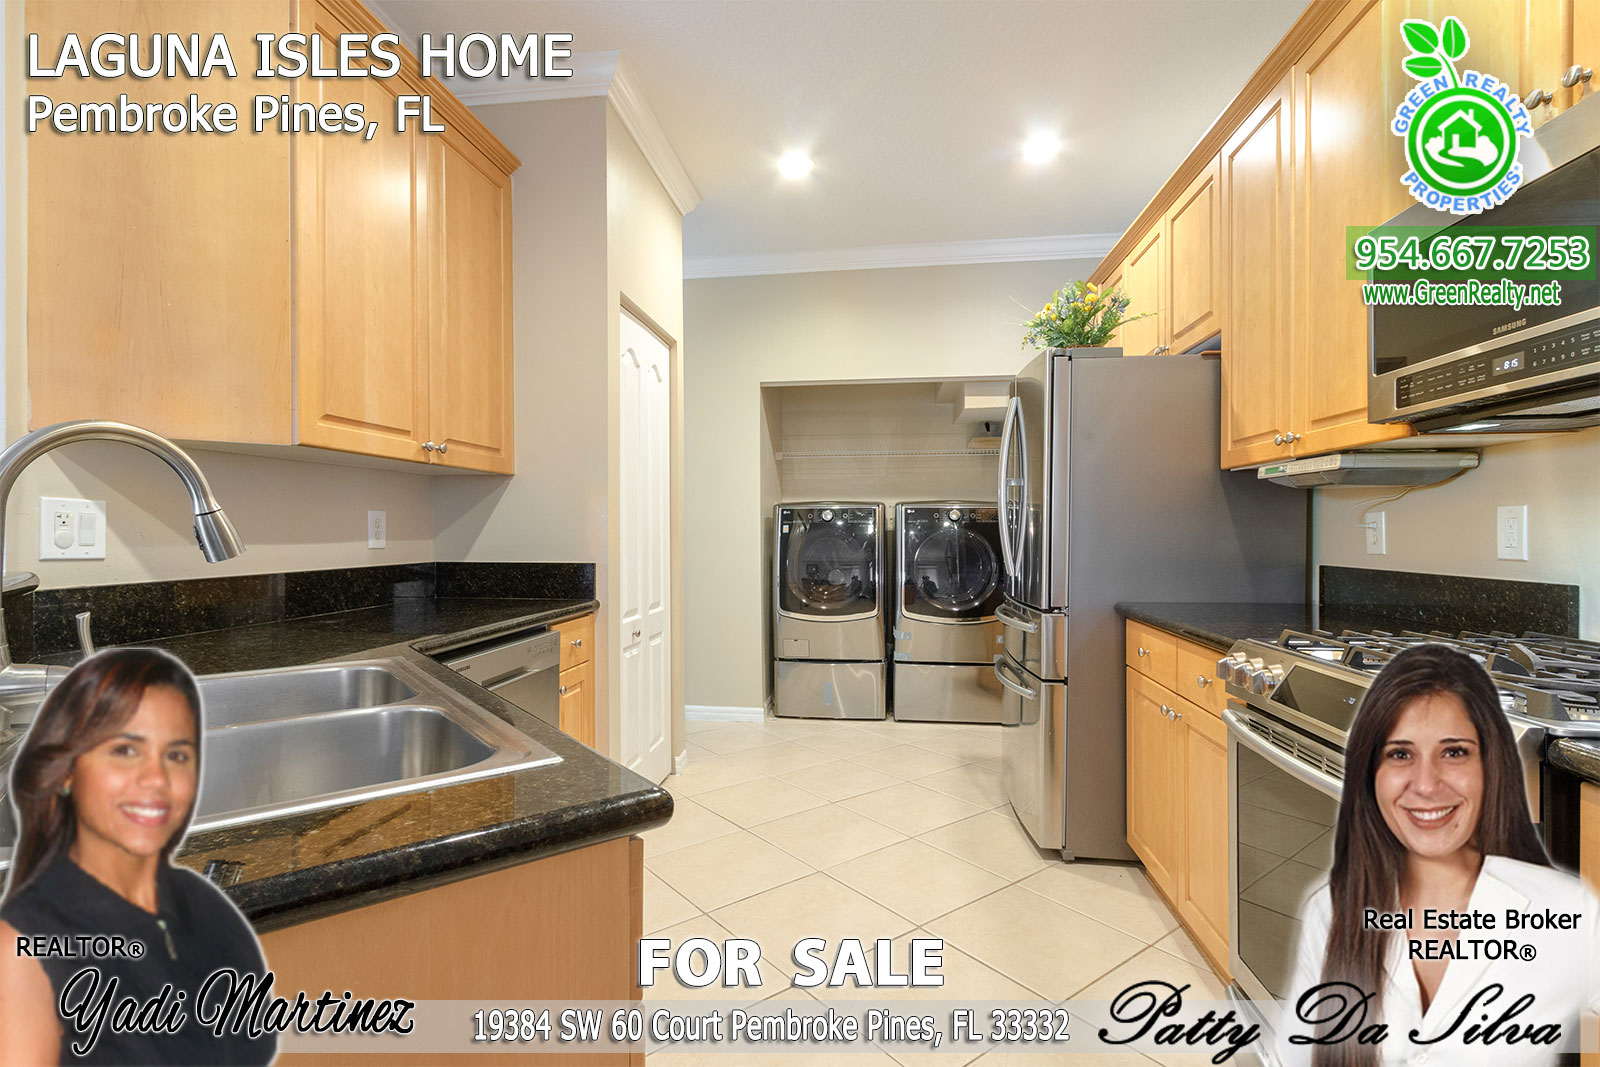 Pembroke-pines-laguna-isles-home-for-sale-by-green-realty-properties-9